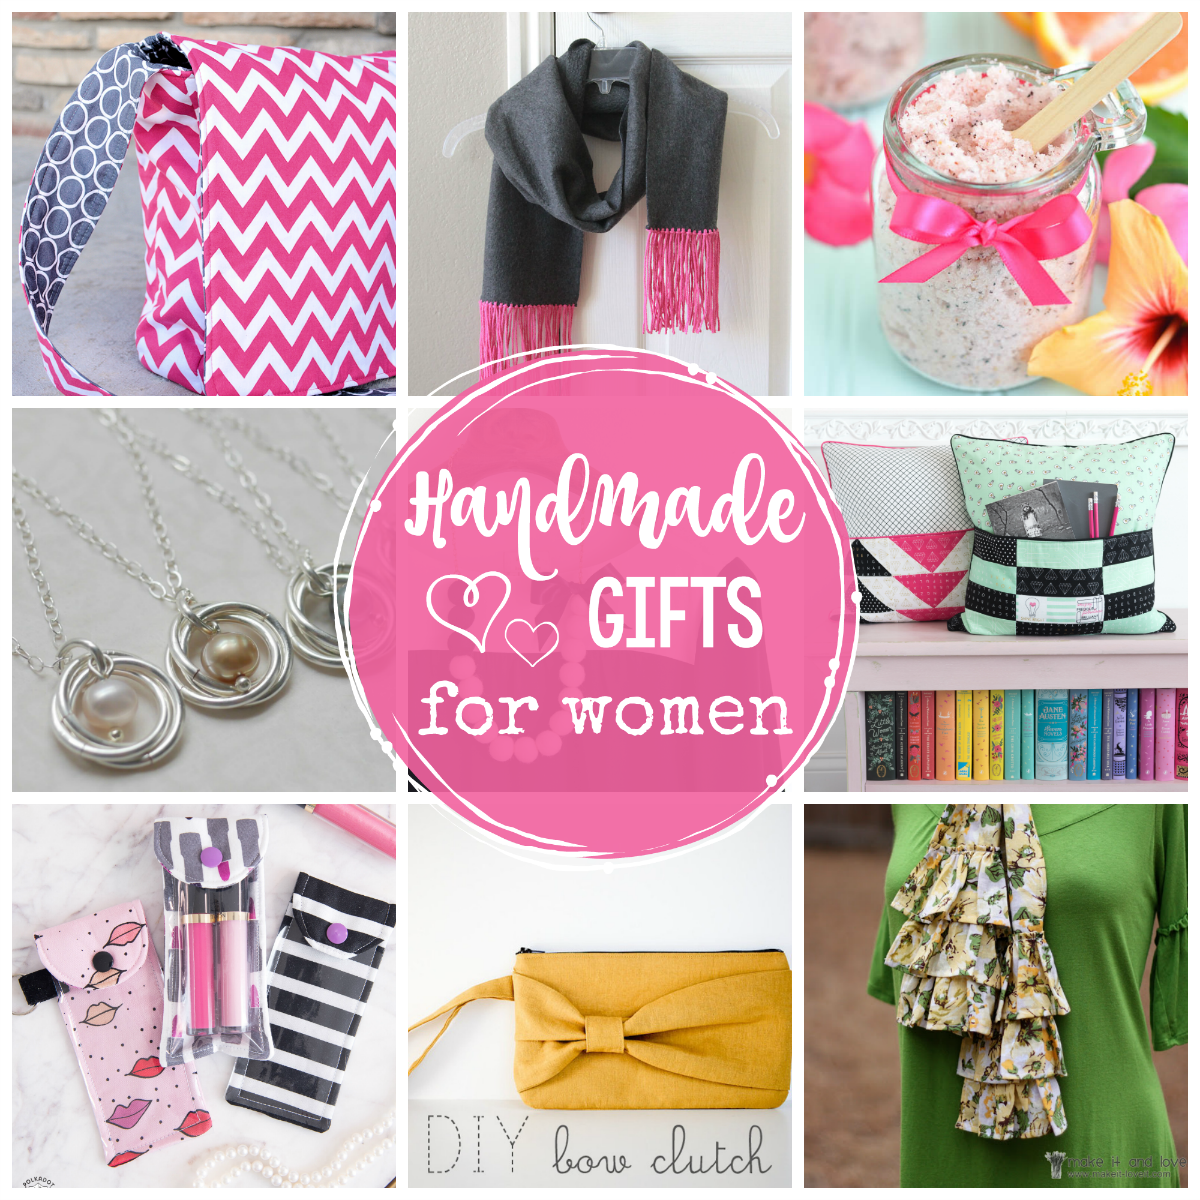 25 Great Handmade Gifts for Women - Crazy Little Projects